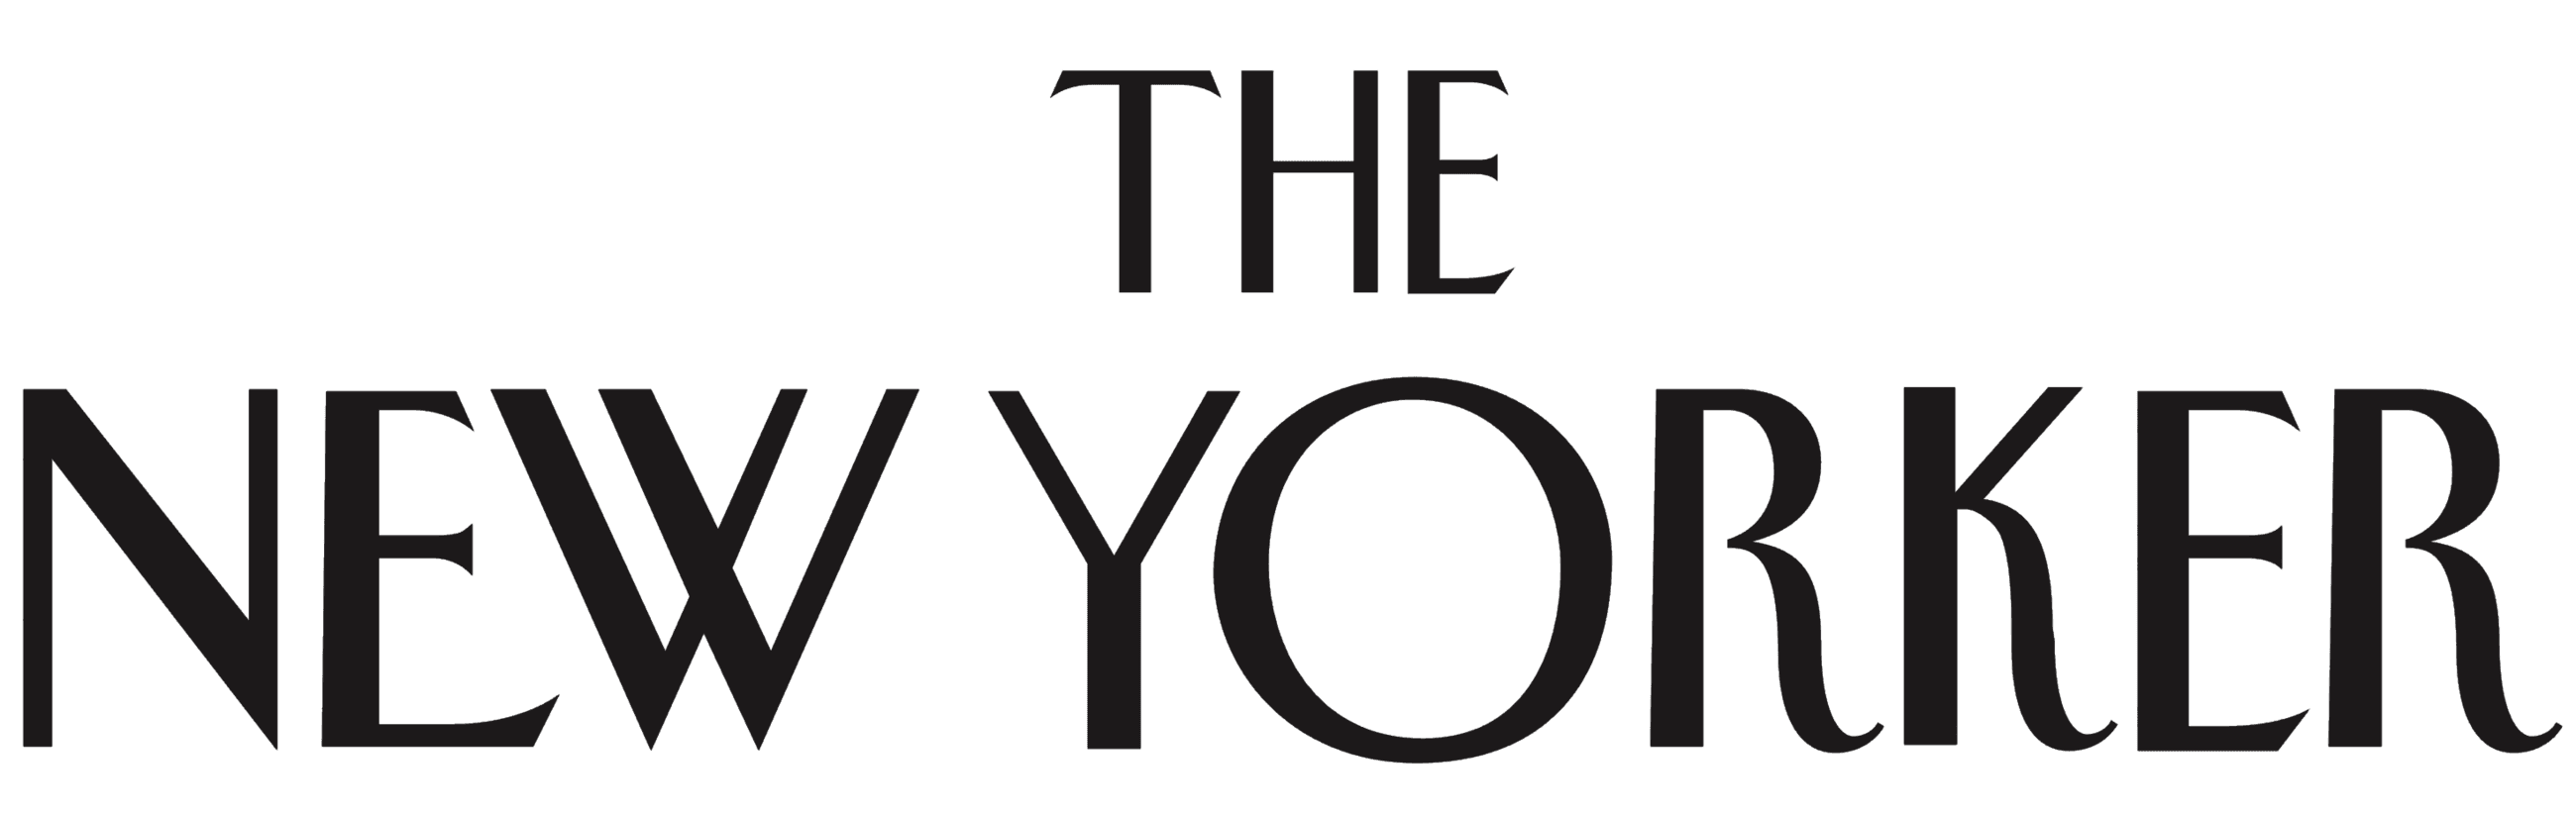 The_New_Yorker_logo Opens in new window